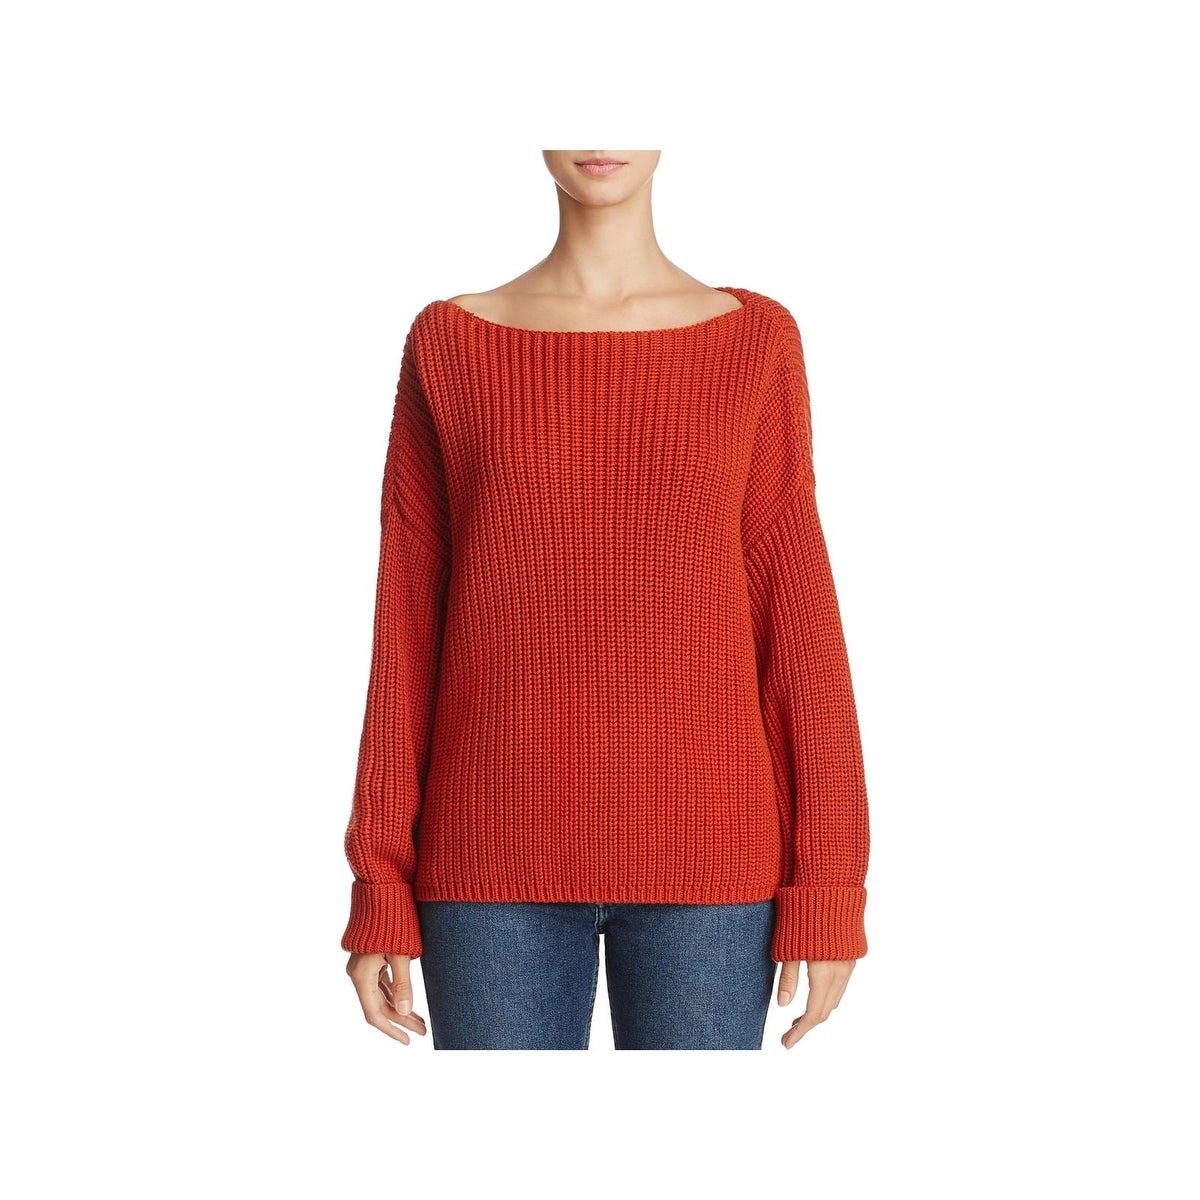 Women's SweatersFind French Clothing Connection Great jSAc5R34Lq